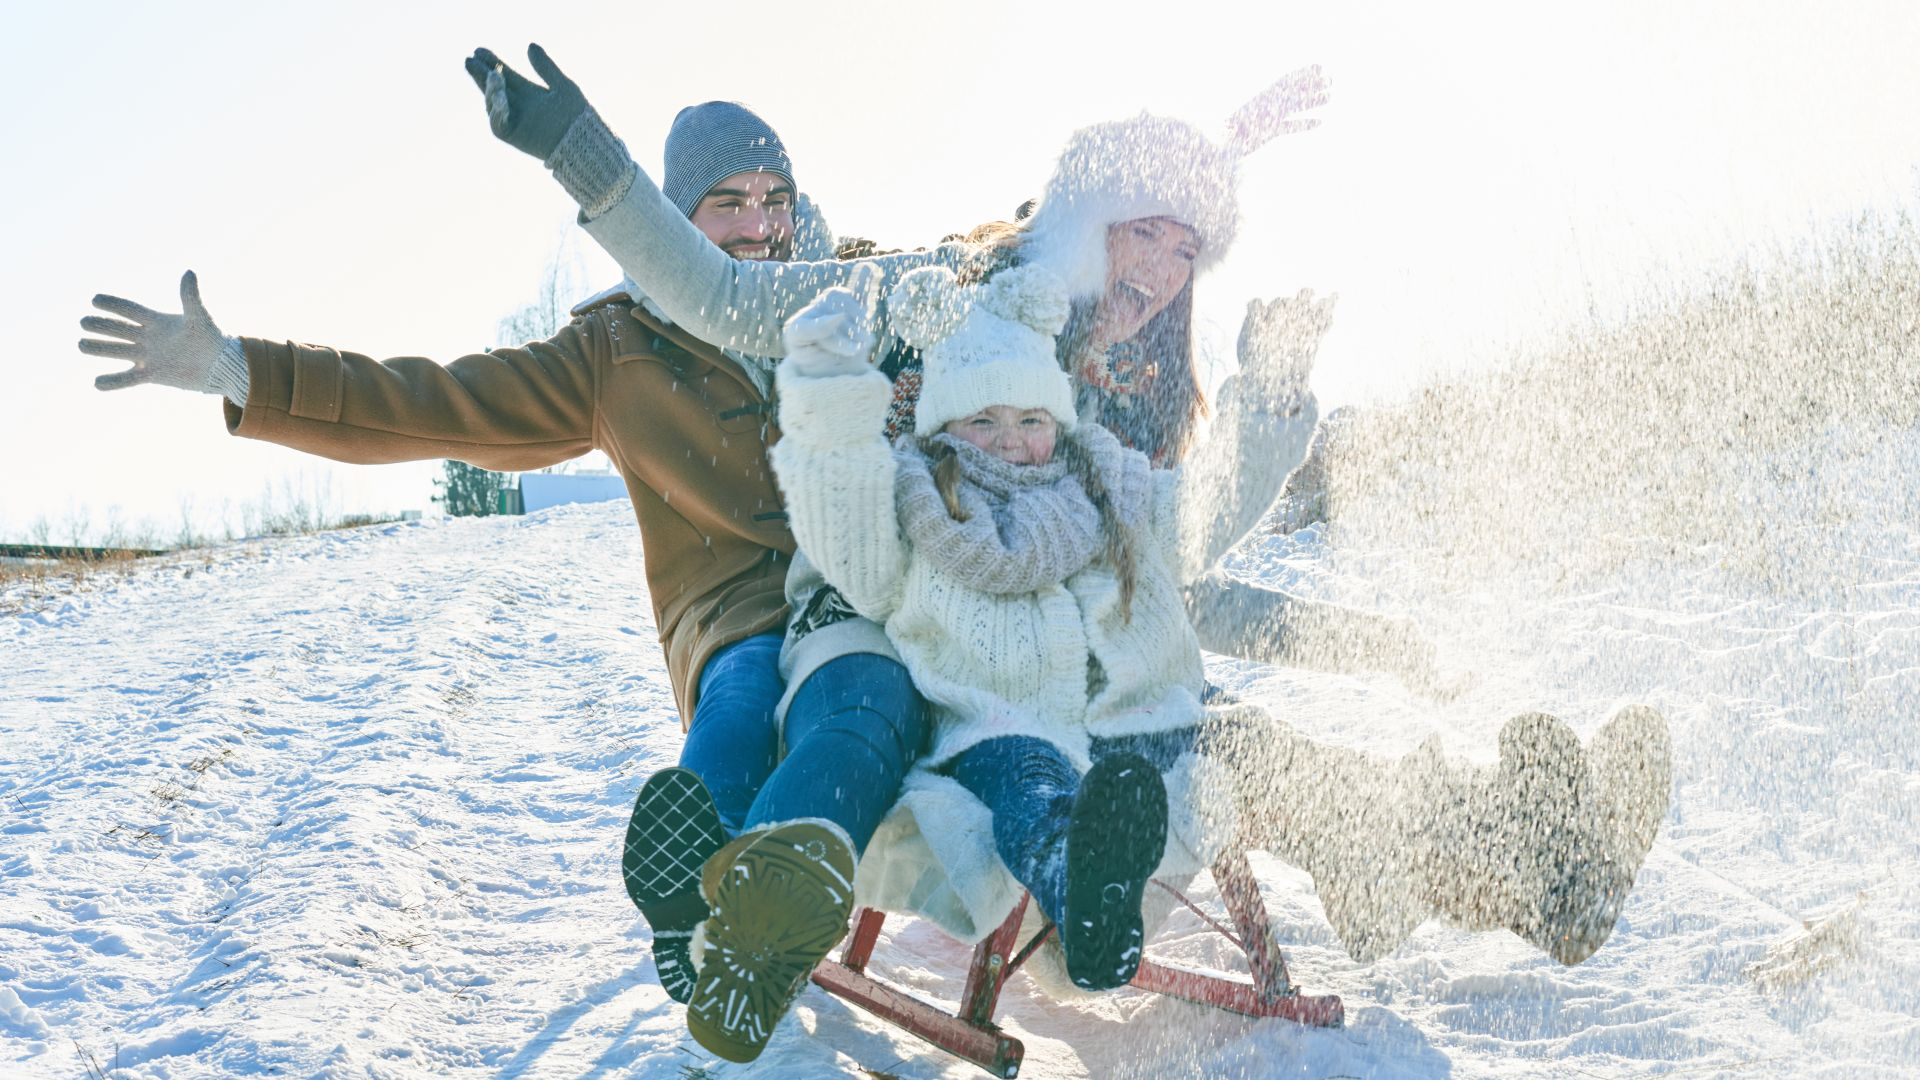 Happy Family Sledding On Snow Covered Field